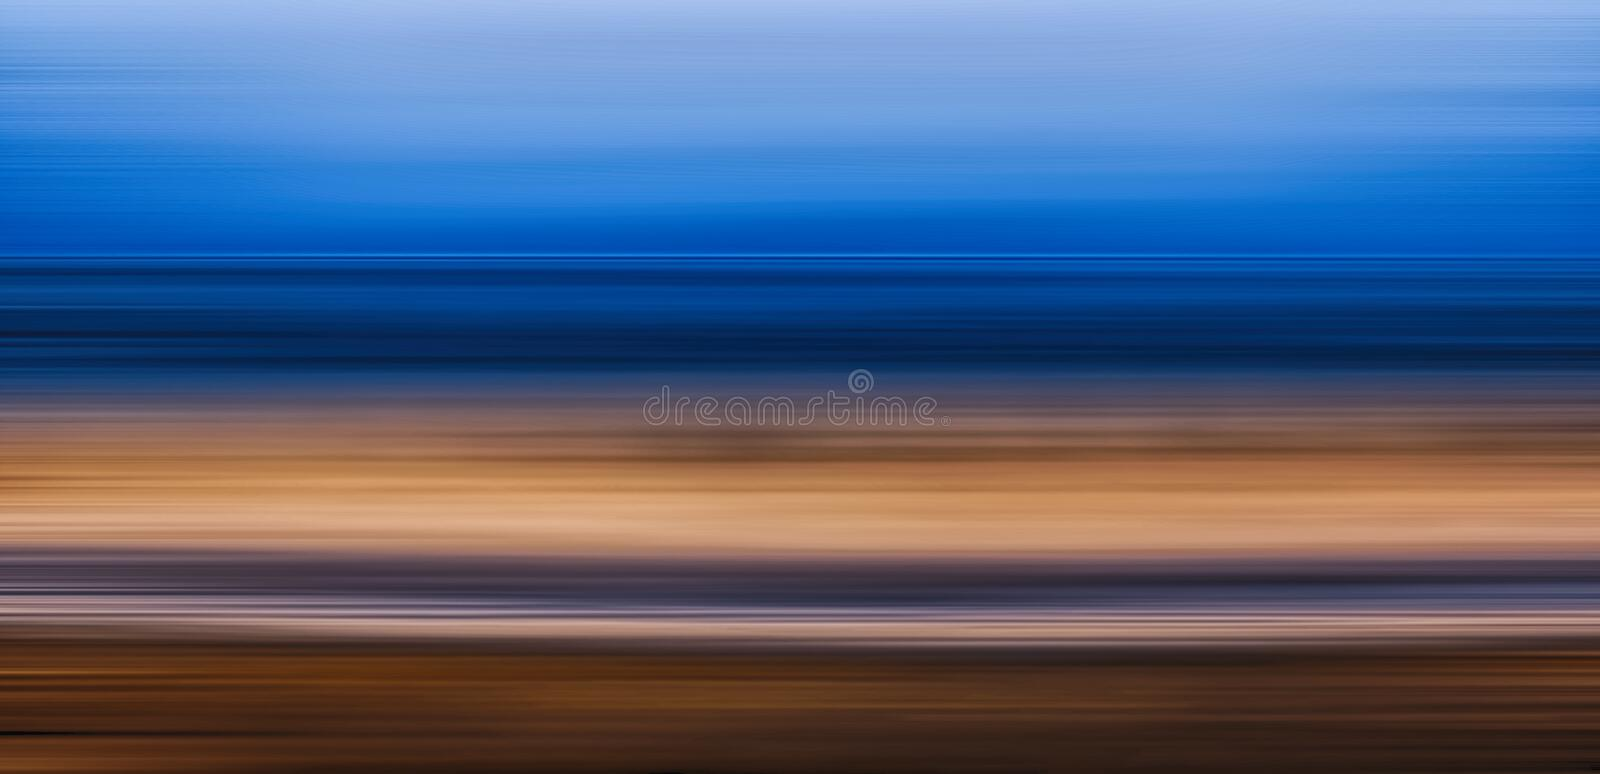 Seascape motion blur effect royalty free stock photography